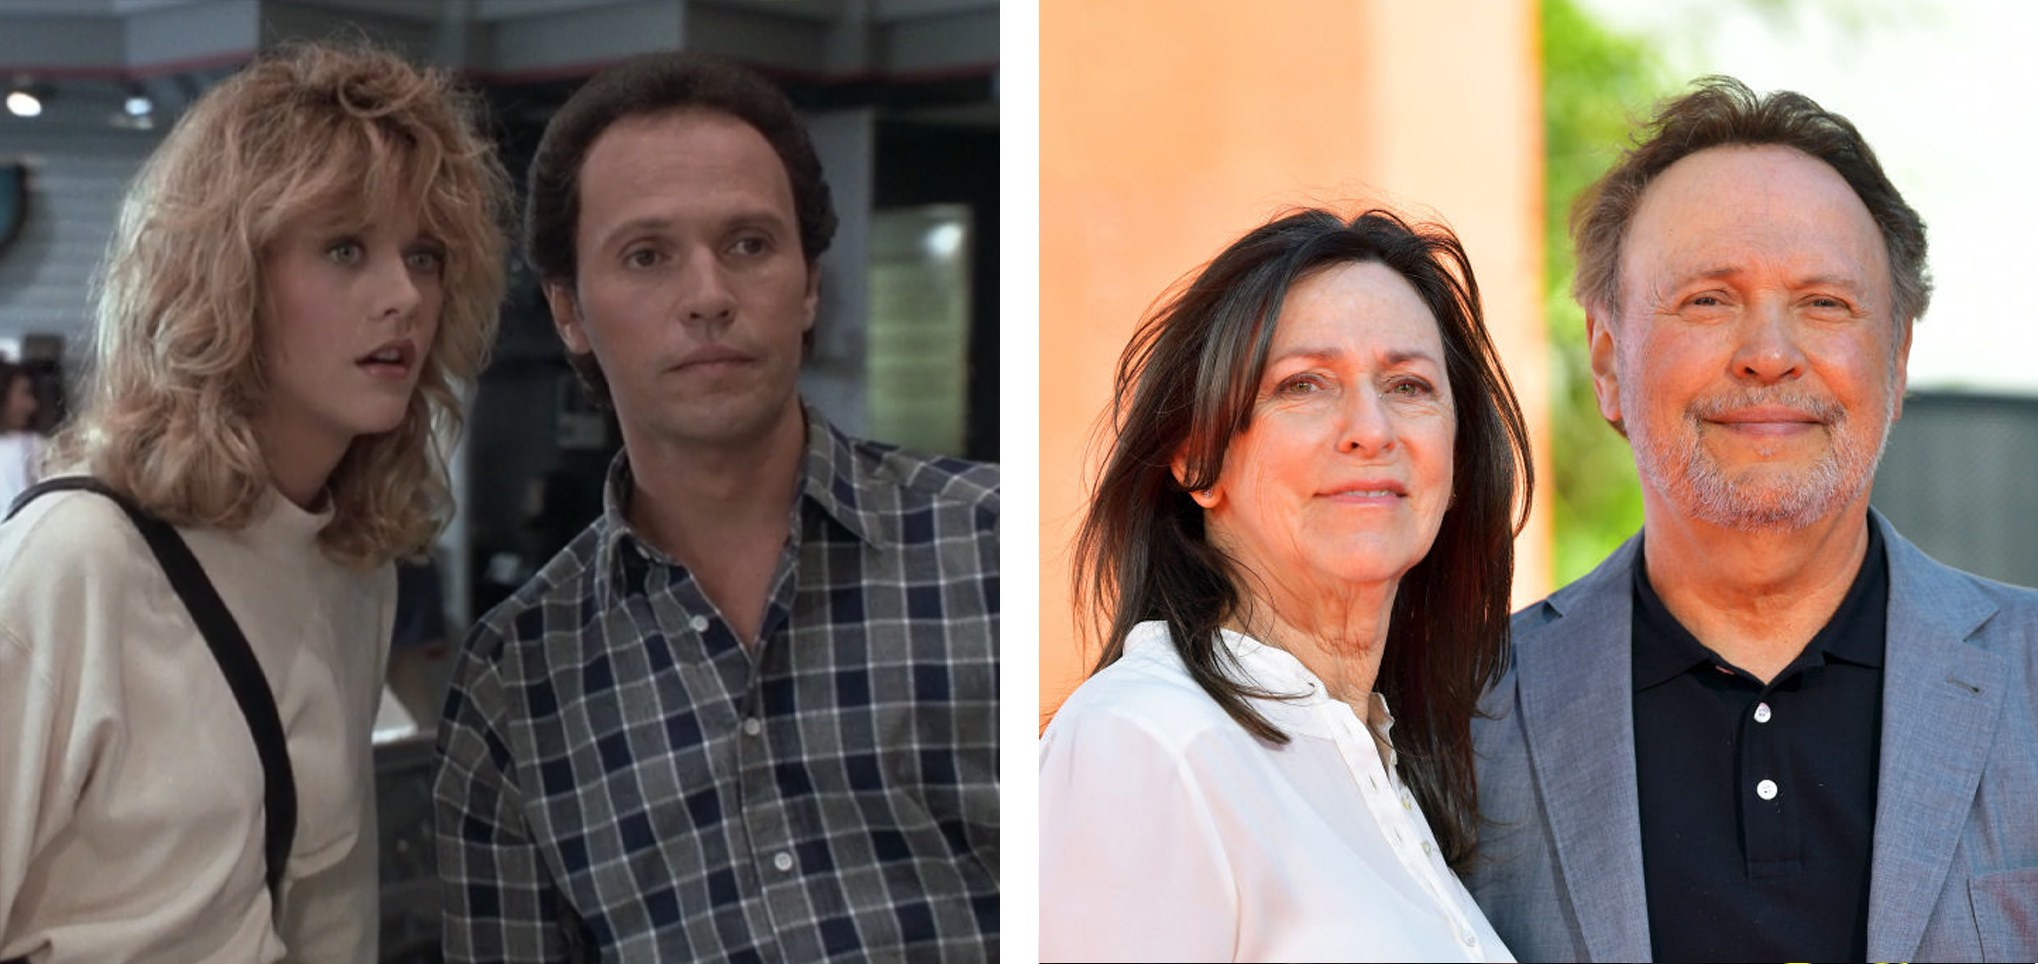 On the left, Billy is in character with his costar at an electronics shop. On the right, Crystal is with his wife at a film festival